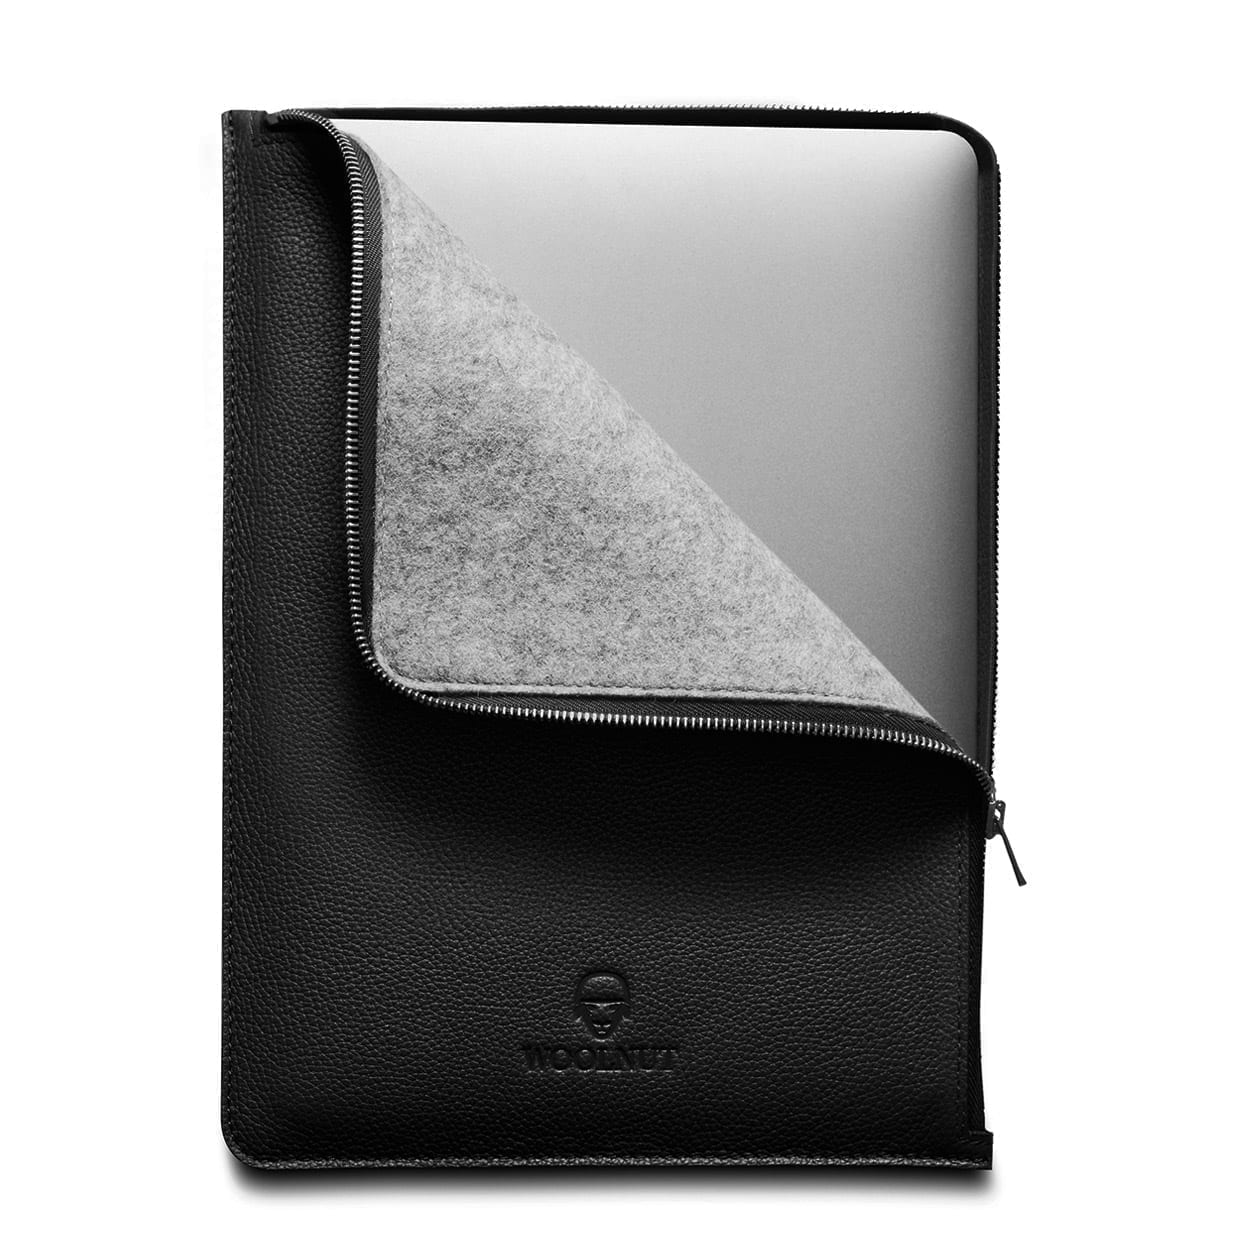 "Woolnut Leather Folio for Macbook 15"" (Late 2016-2019 models with Touch Bar and Thunderbolt 3) - Netnaturshop"